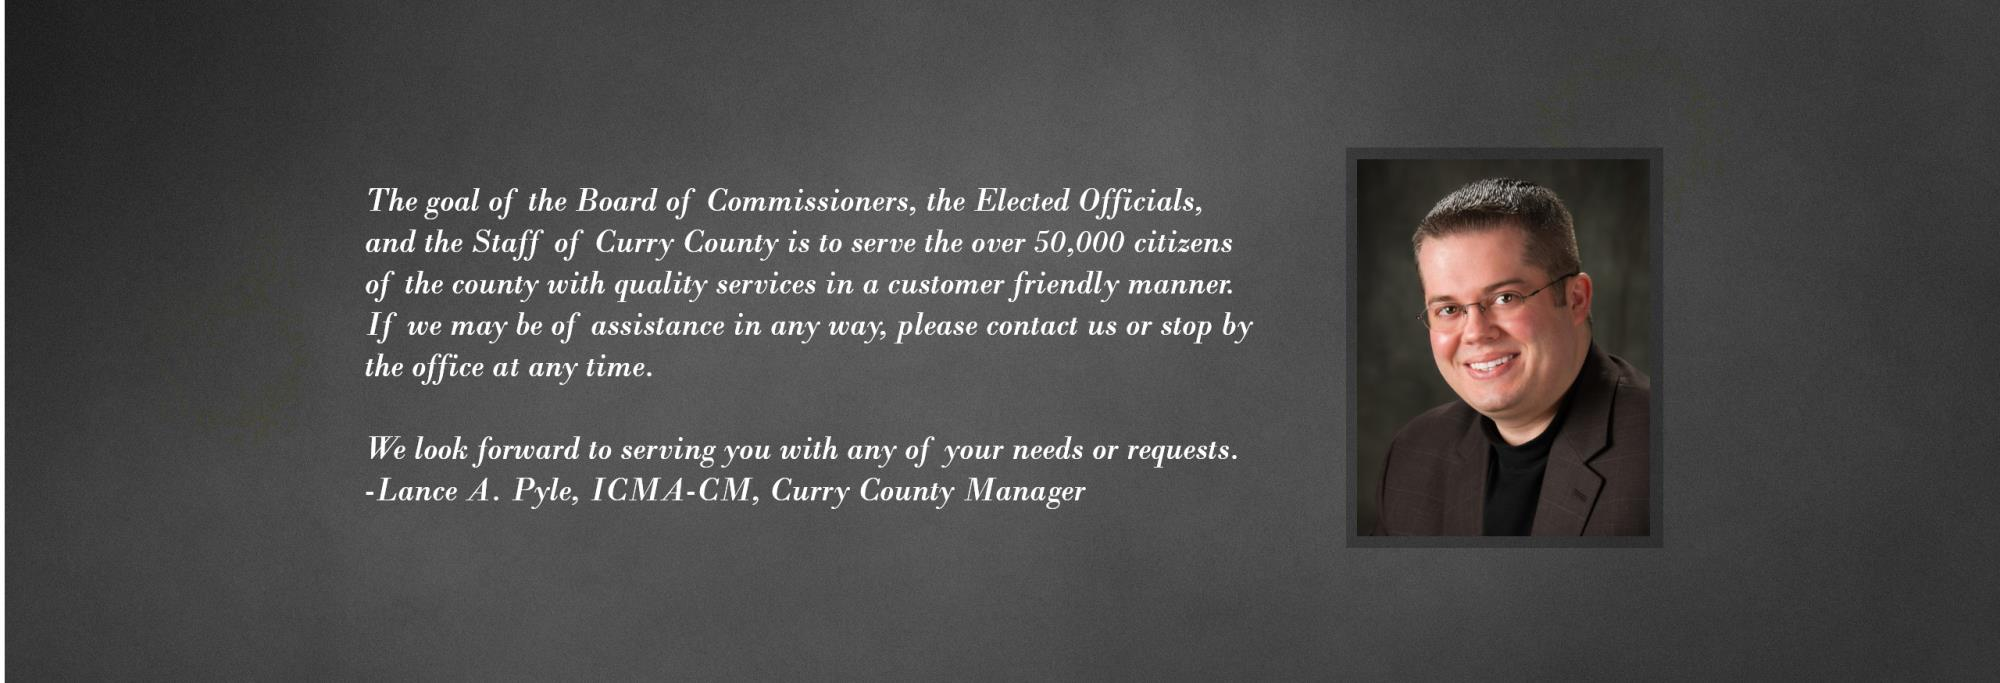 The goal of Curry County is the serve the over 50,000 citizens with quality services in a customer friendly manner. If we may be of assistance in any way, please contact us or stop by the office. We look forward to serving your needs or requests. Lance A Pyle, ICMA-CM, Curry County Manager